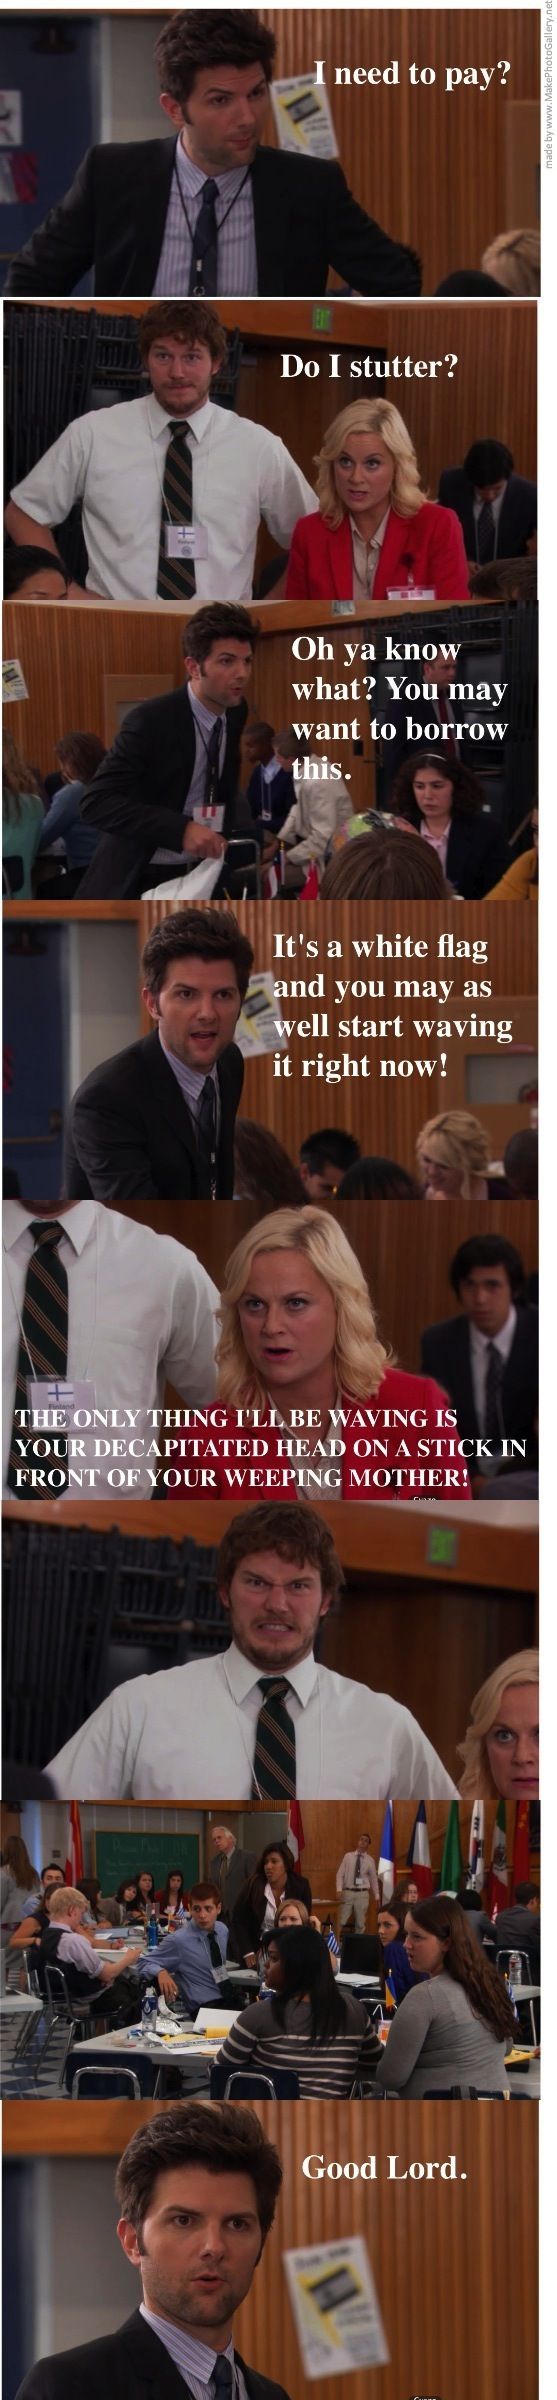 """Leslie Knope at model U.N. - """"The only thing I'll be waving is your decapitated head on a stick in front of your weeping mother!"""" Parks and Rec"""